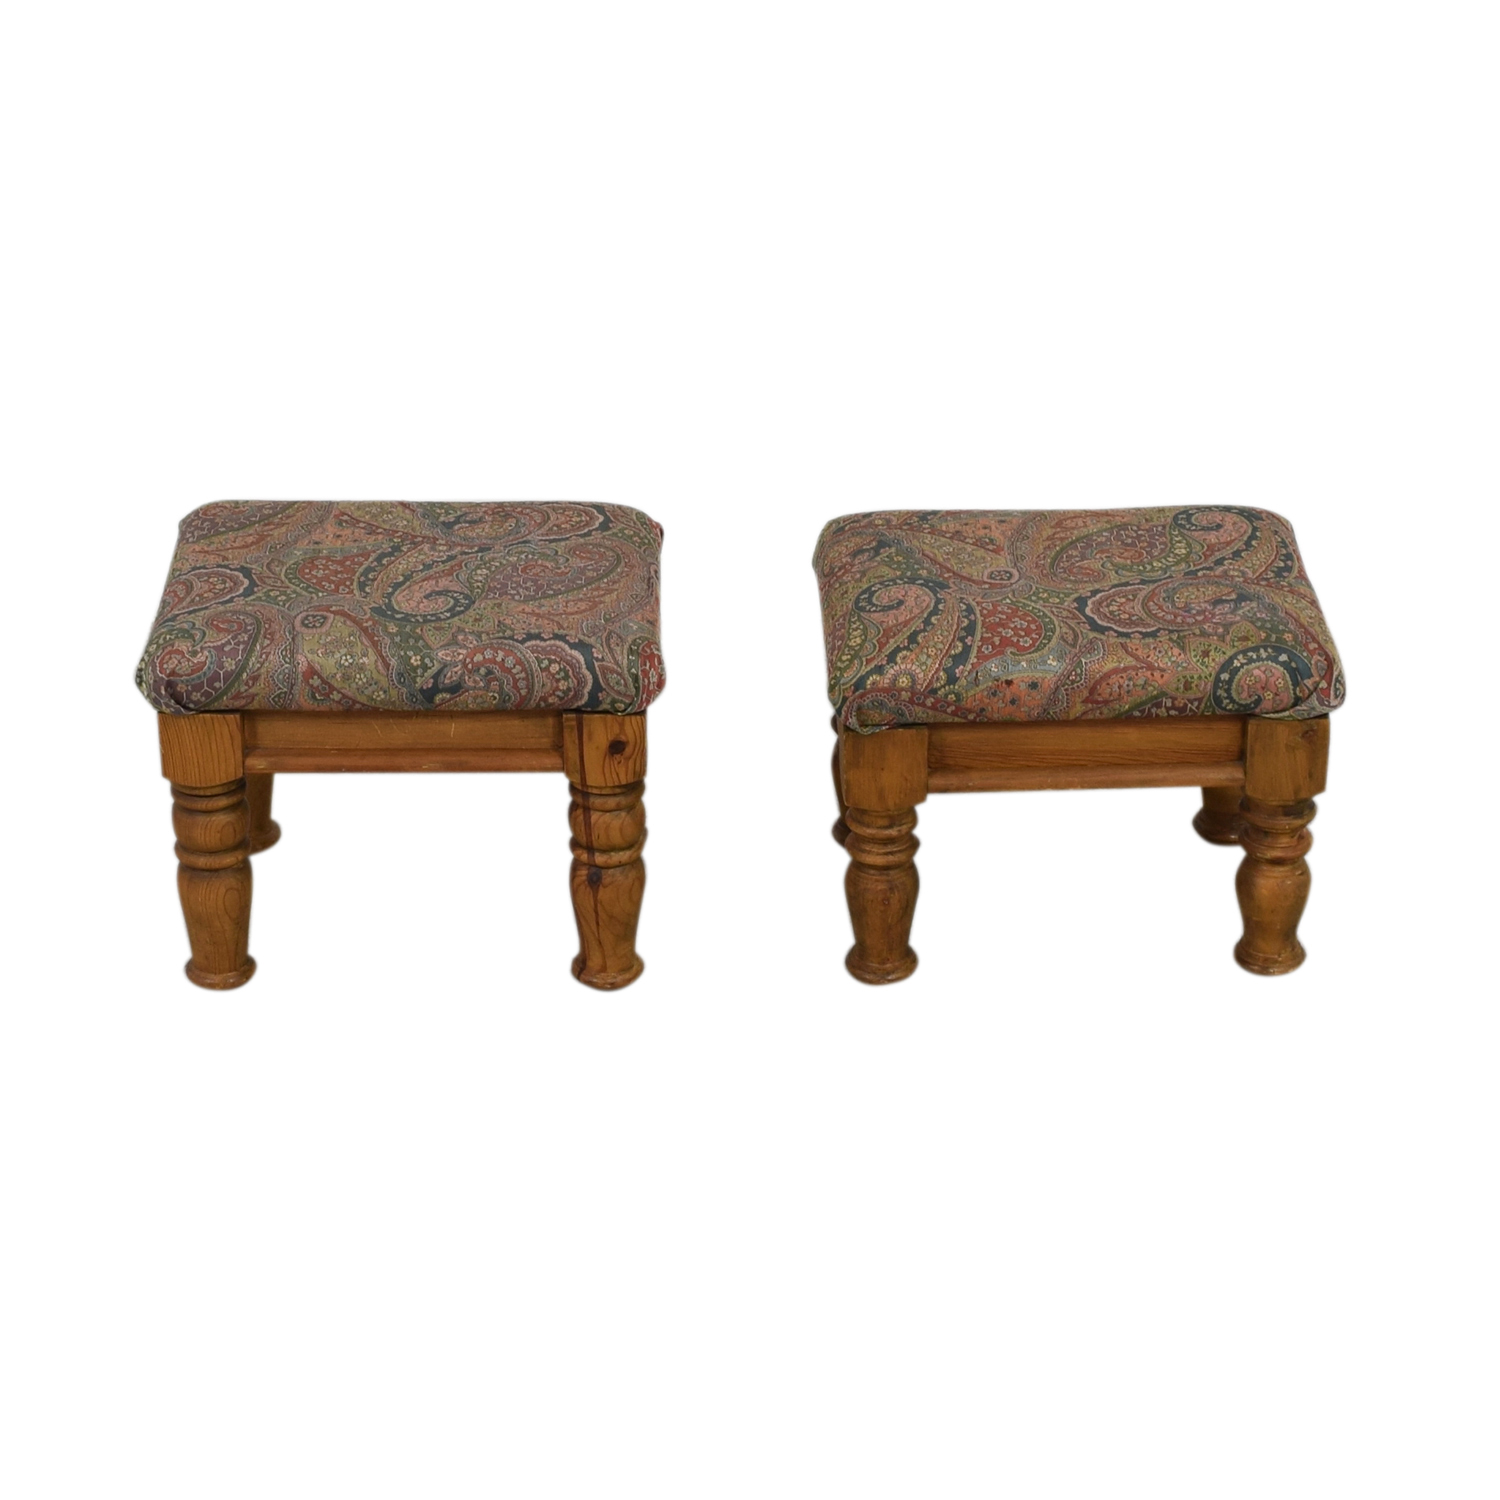 Multi-Colored Paisley Upholstered Wood Ottomans or Foot Stools nj